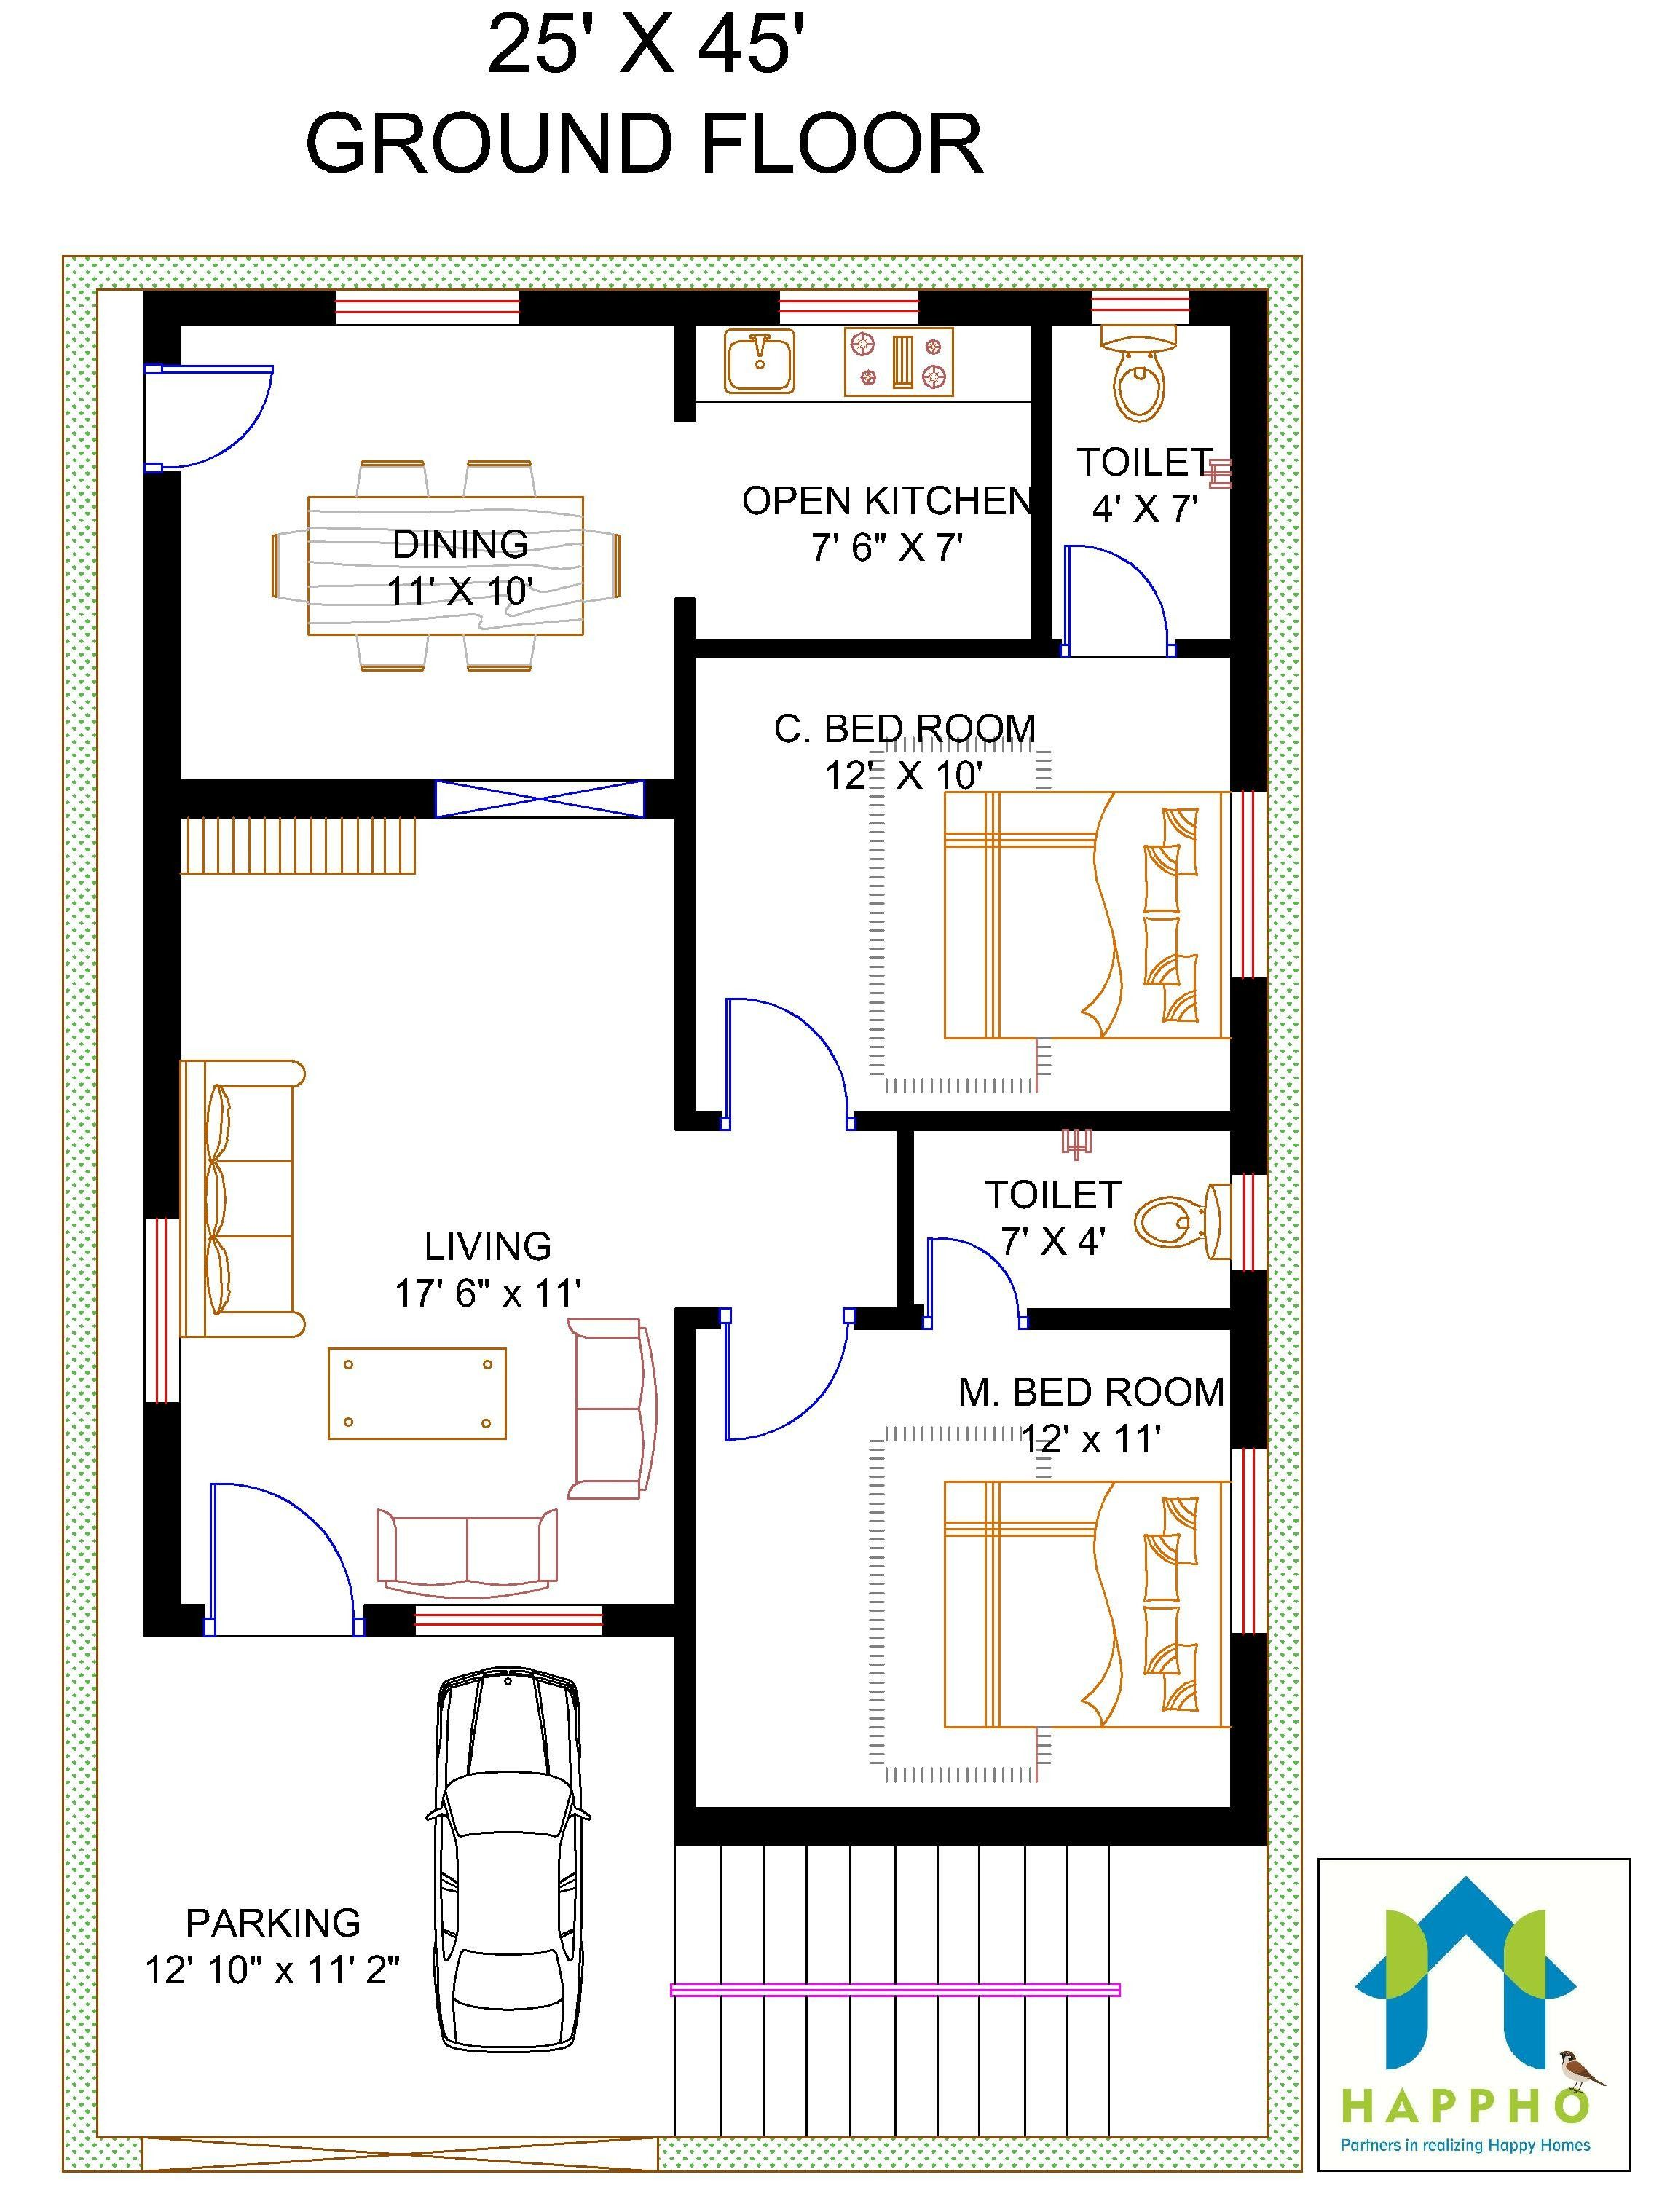 House Plans Drawing Software 2020 Open Concept House Plans Bedroom House Plans Unique Floor Plans